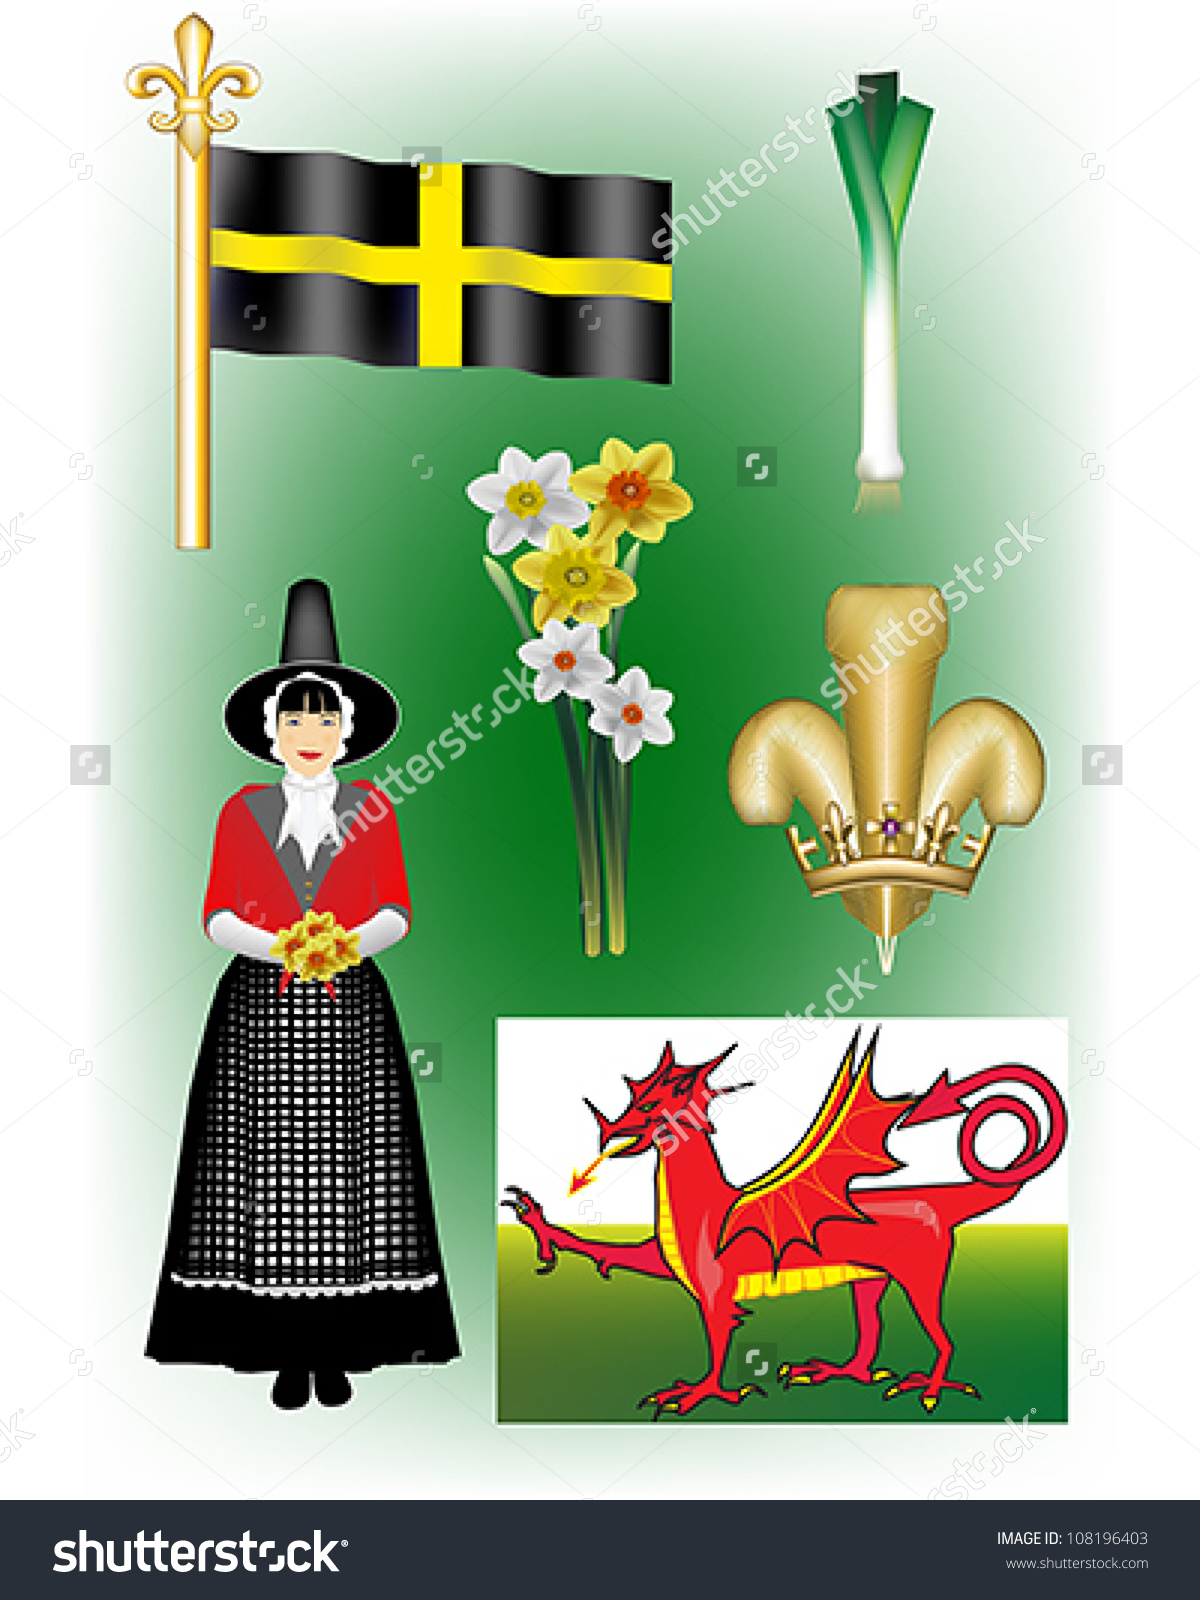 Welsh Vector Illustrations St Davids Flag Stock Vector 108196403.